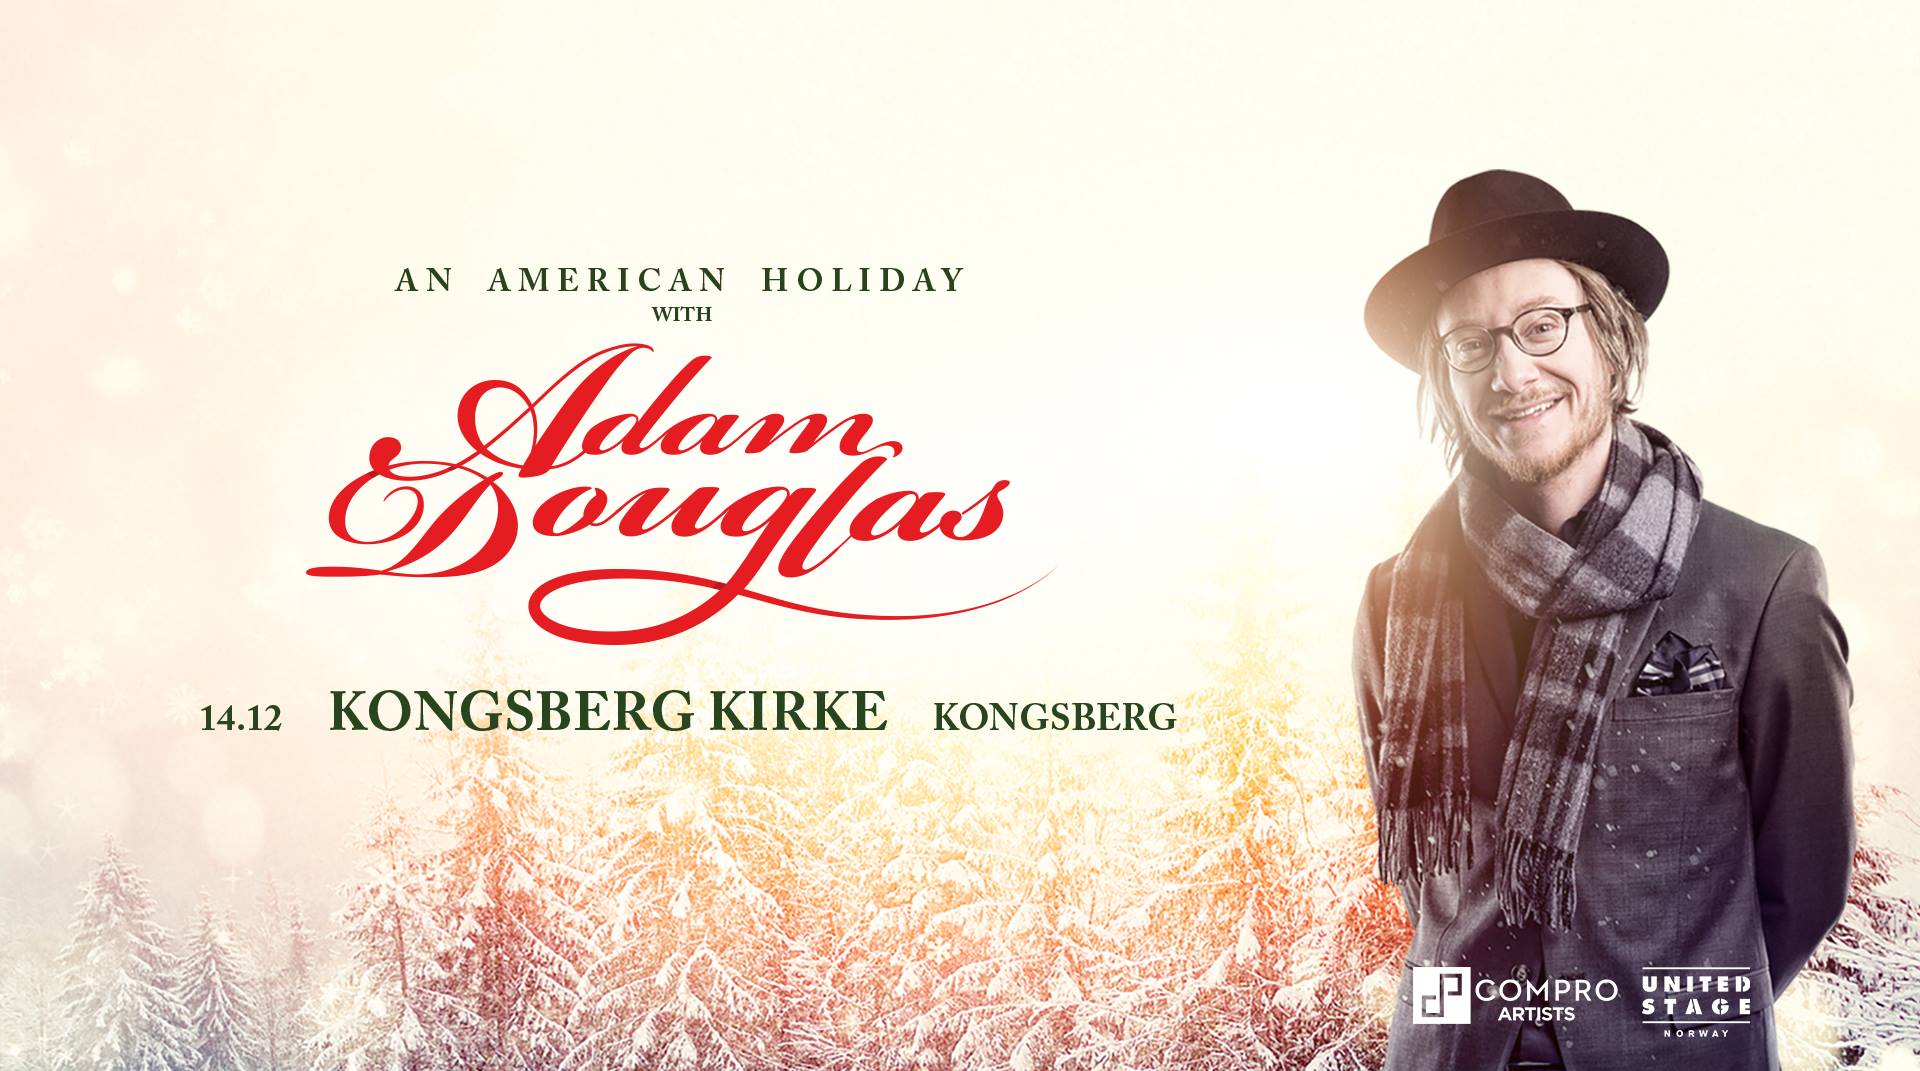 An American Holiday with Adam Douglas